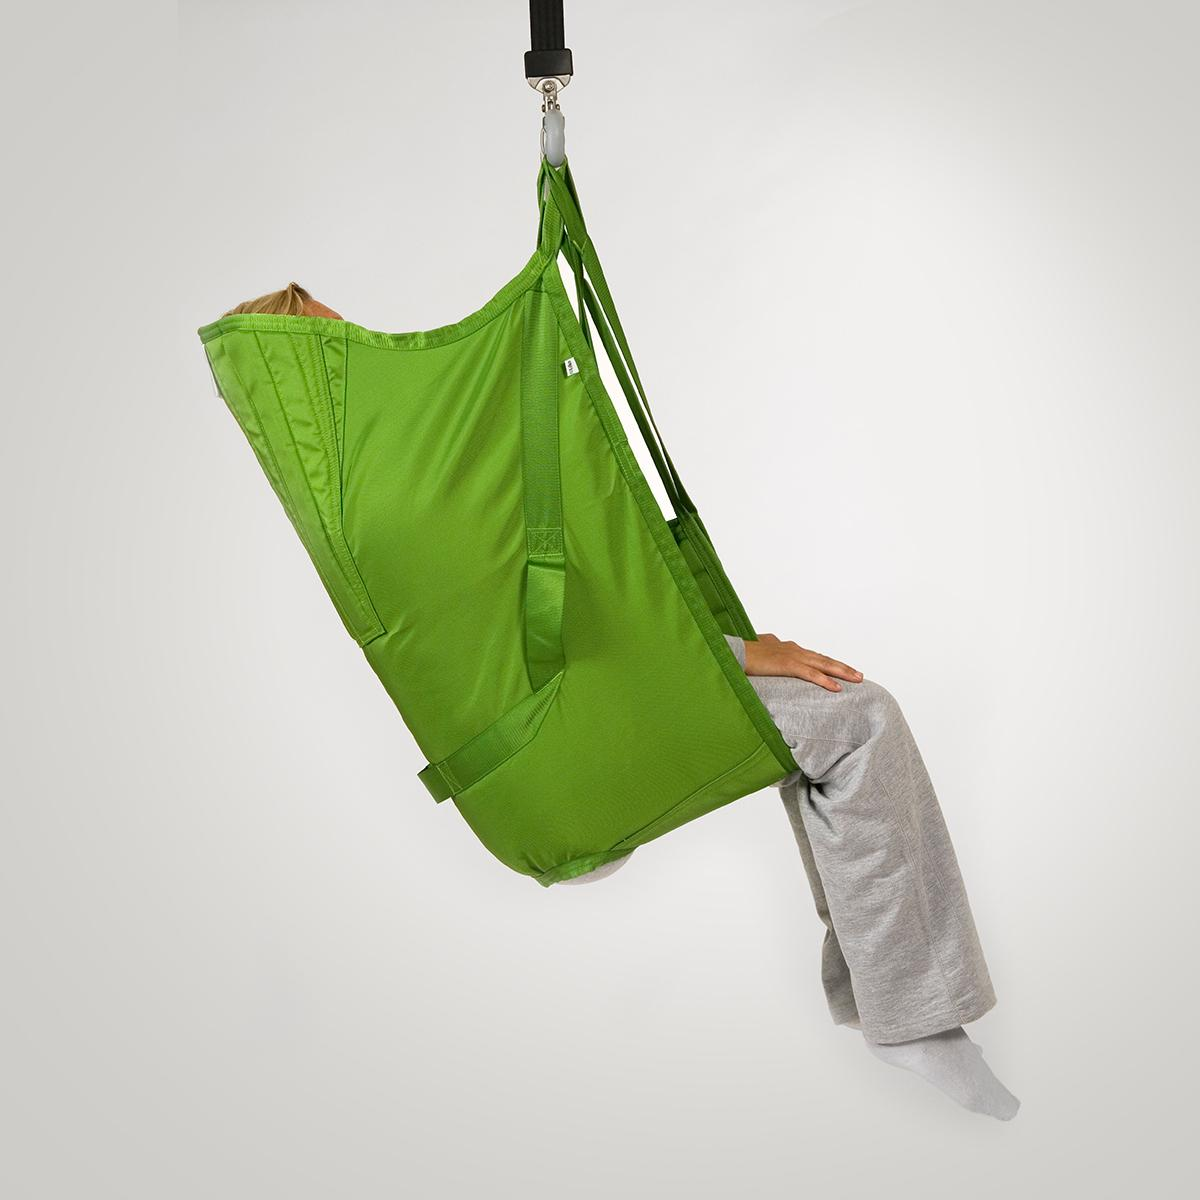 A patient sits in a soft Hillrom highback sling